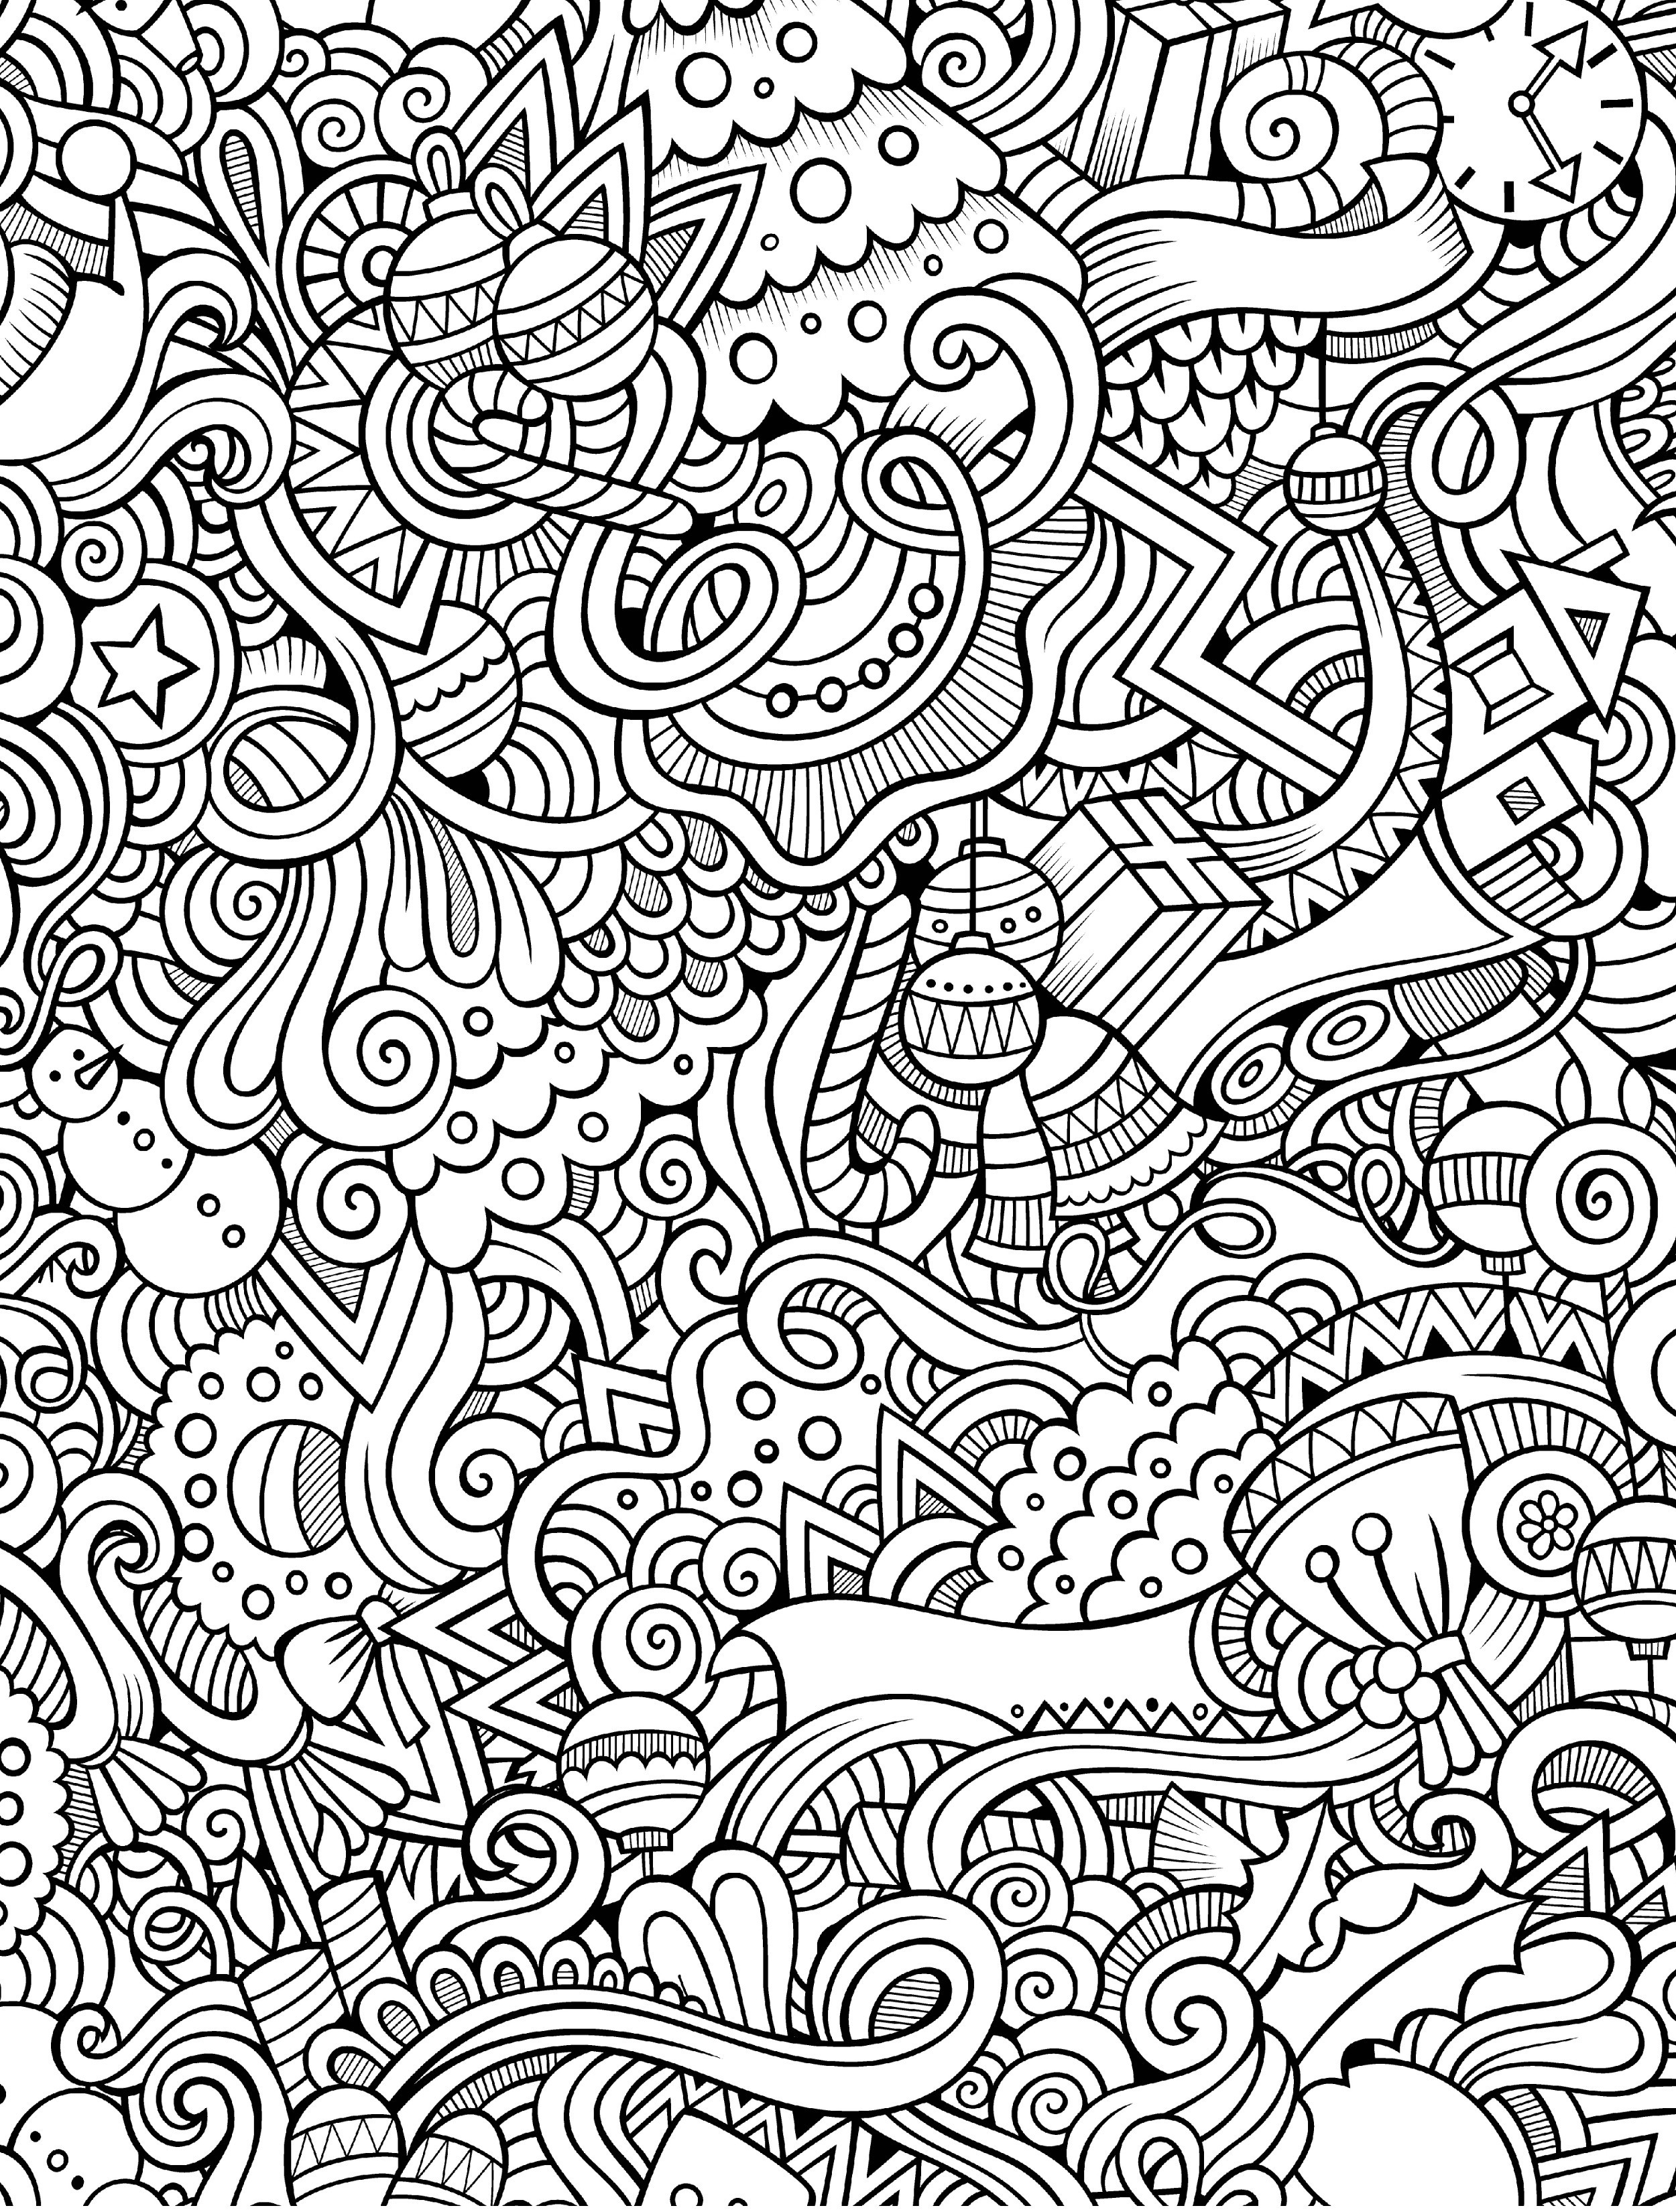 Trippy Coloring Pages Free Printable Psychedelic Coloring Pages Funnyhub